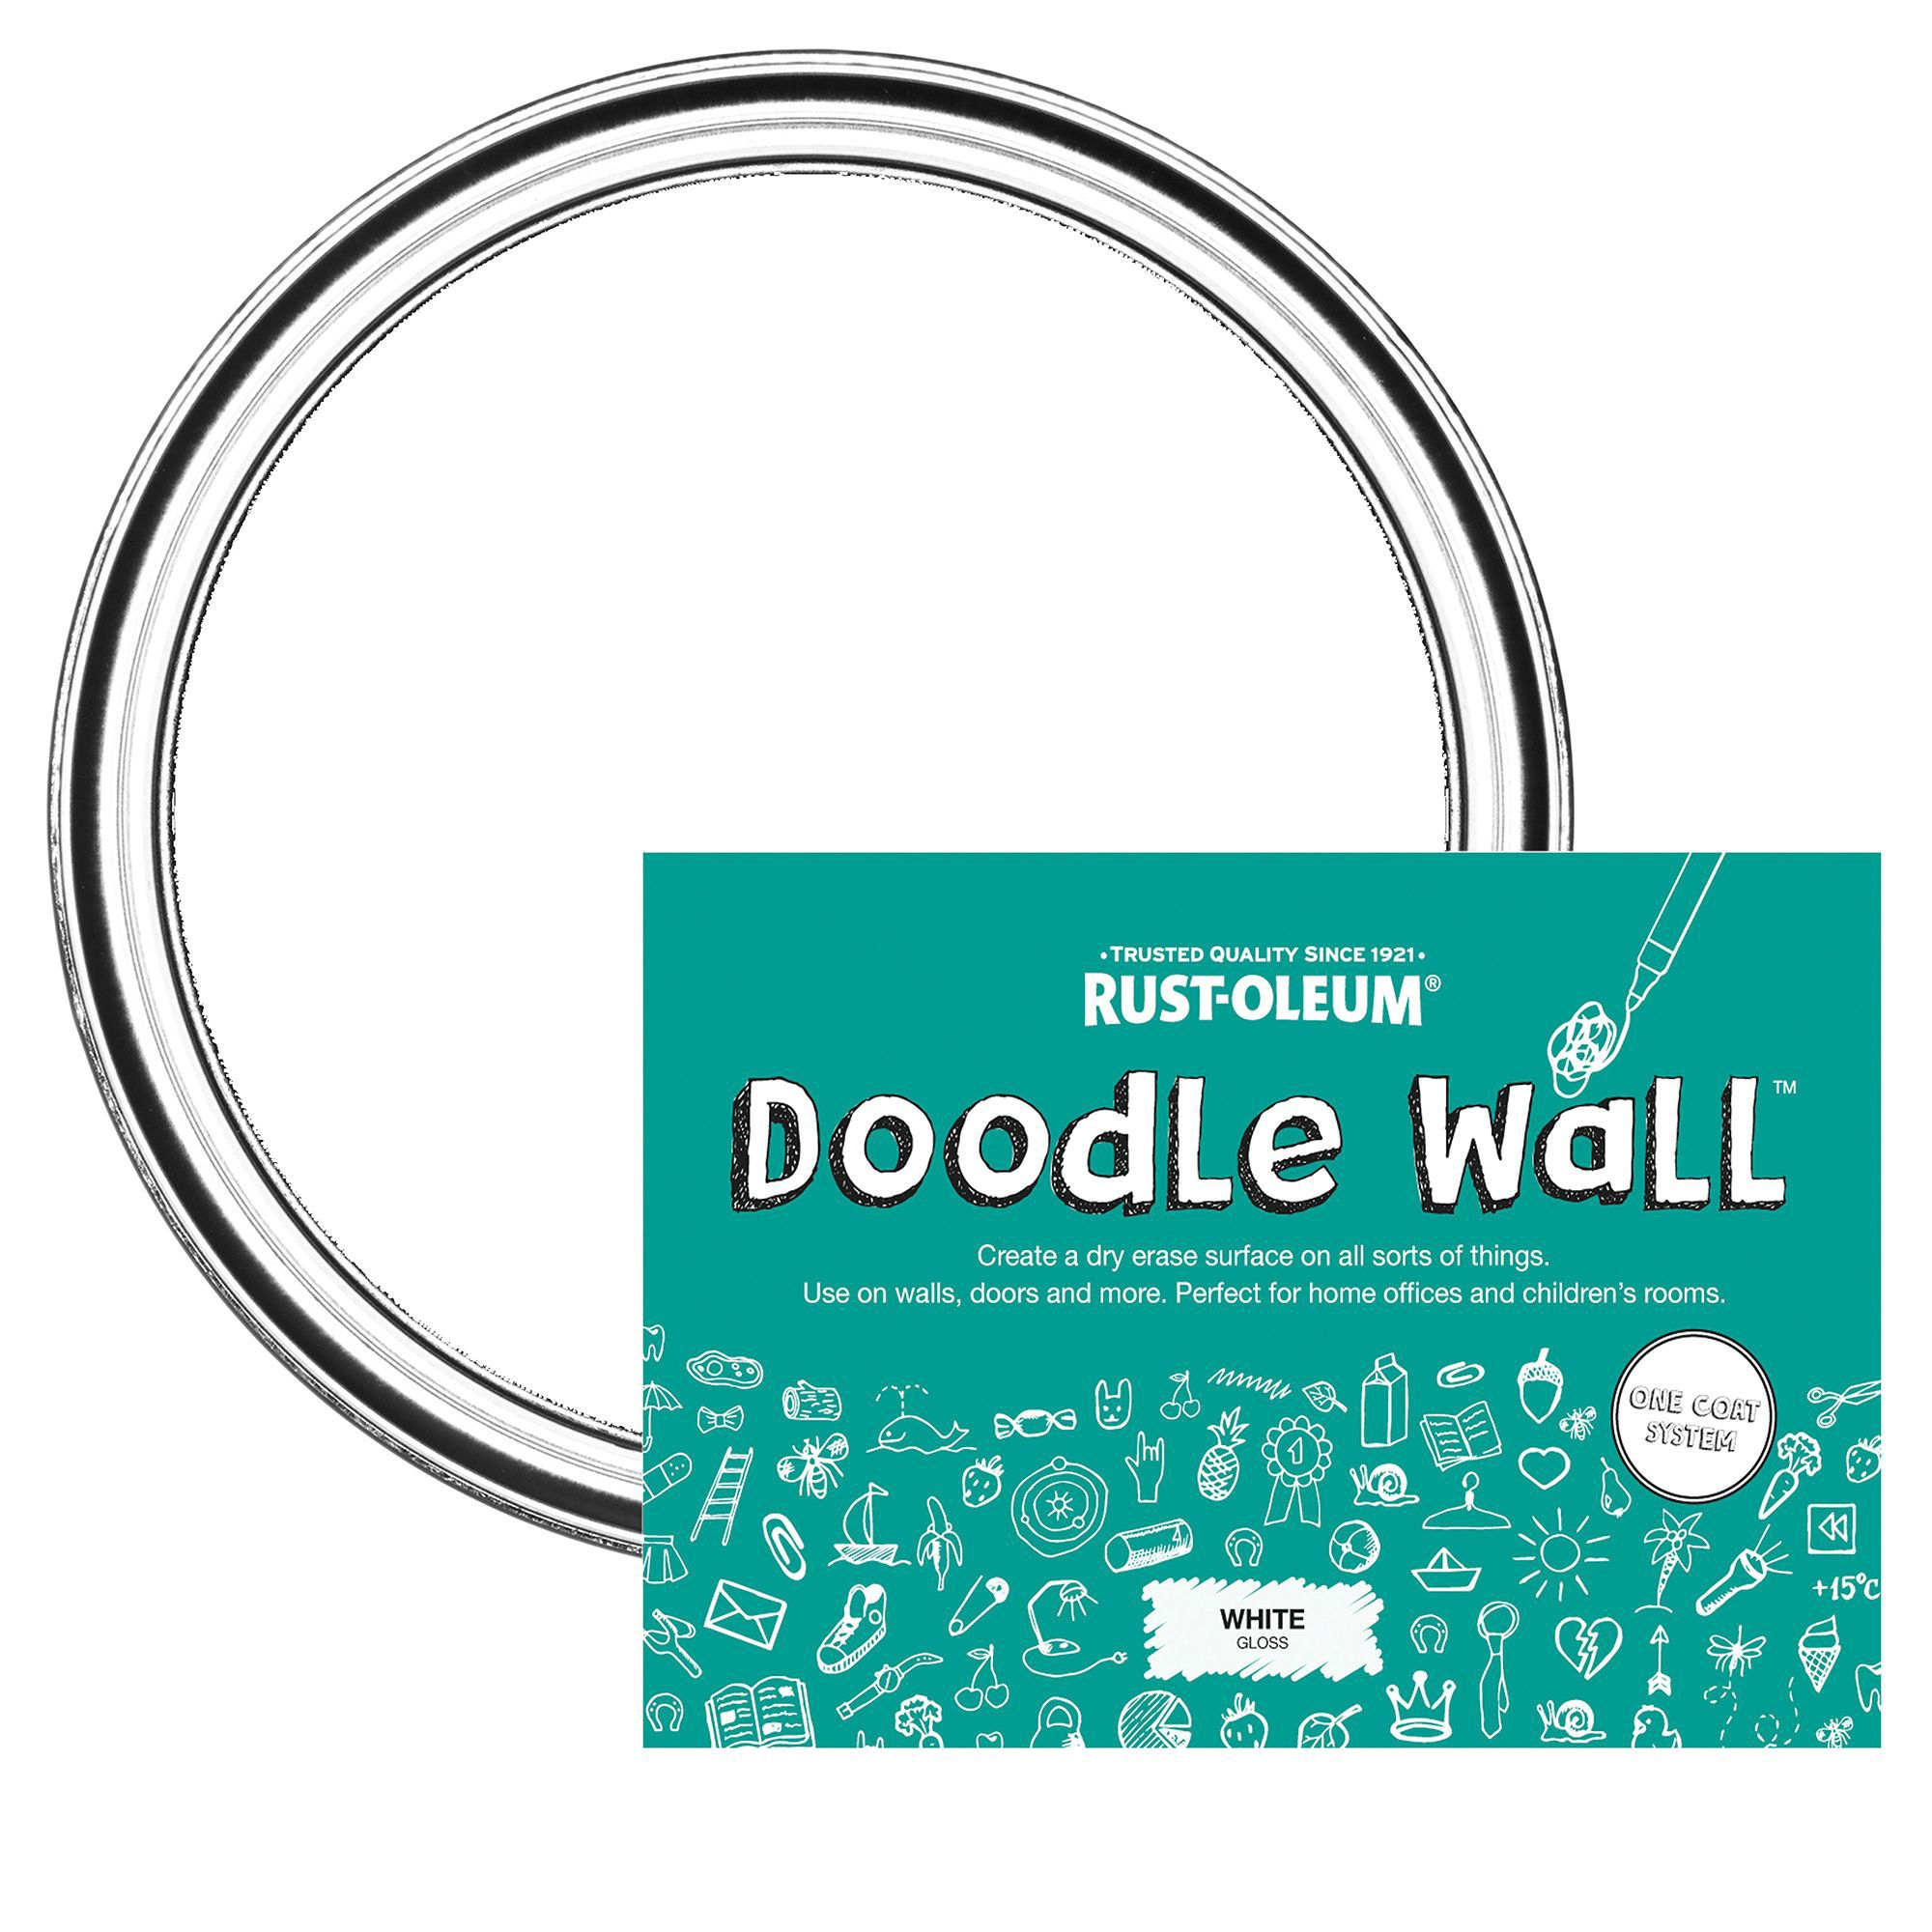 Rust-Oleum Doodle wall White dry Gloss Erase paint kit 500 ml ...